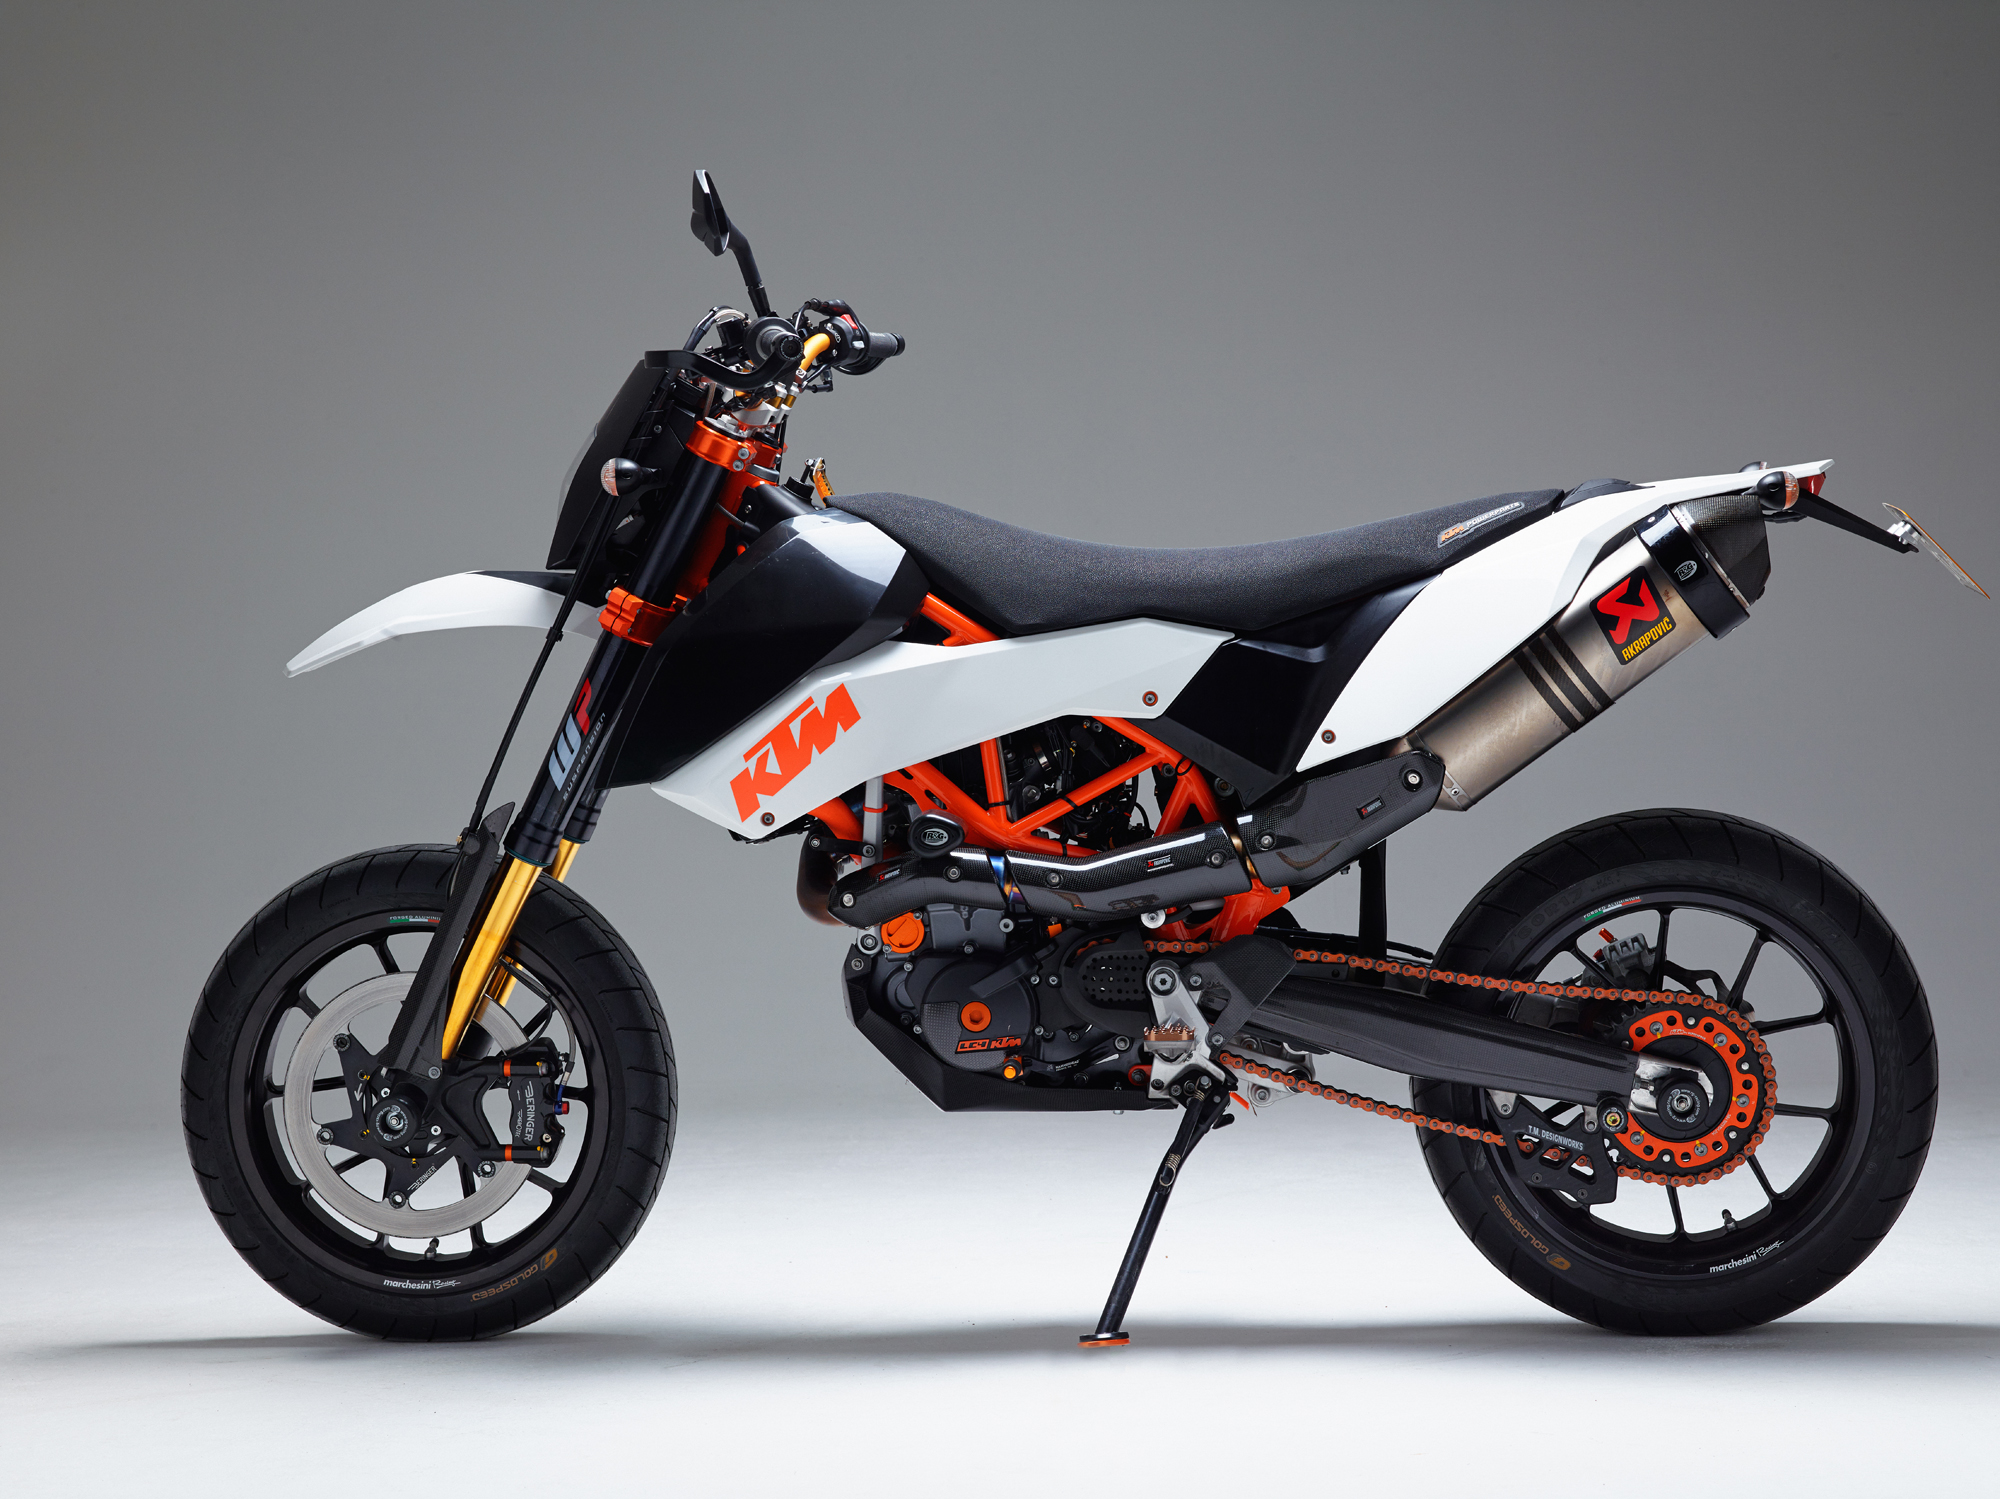 ktm 690 smc r handguards images. Black Bedroom Furniture Sets. Home Design Ideas